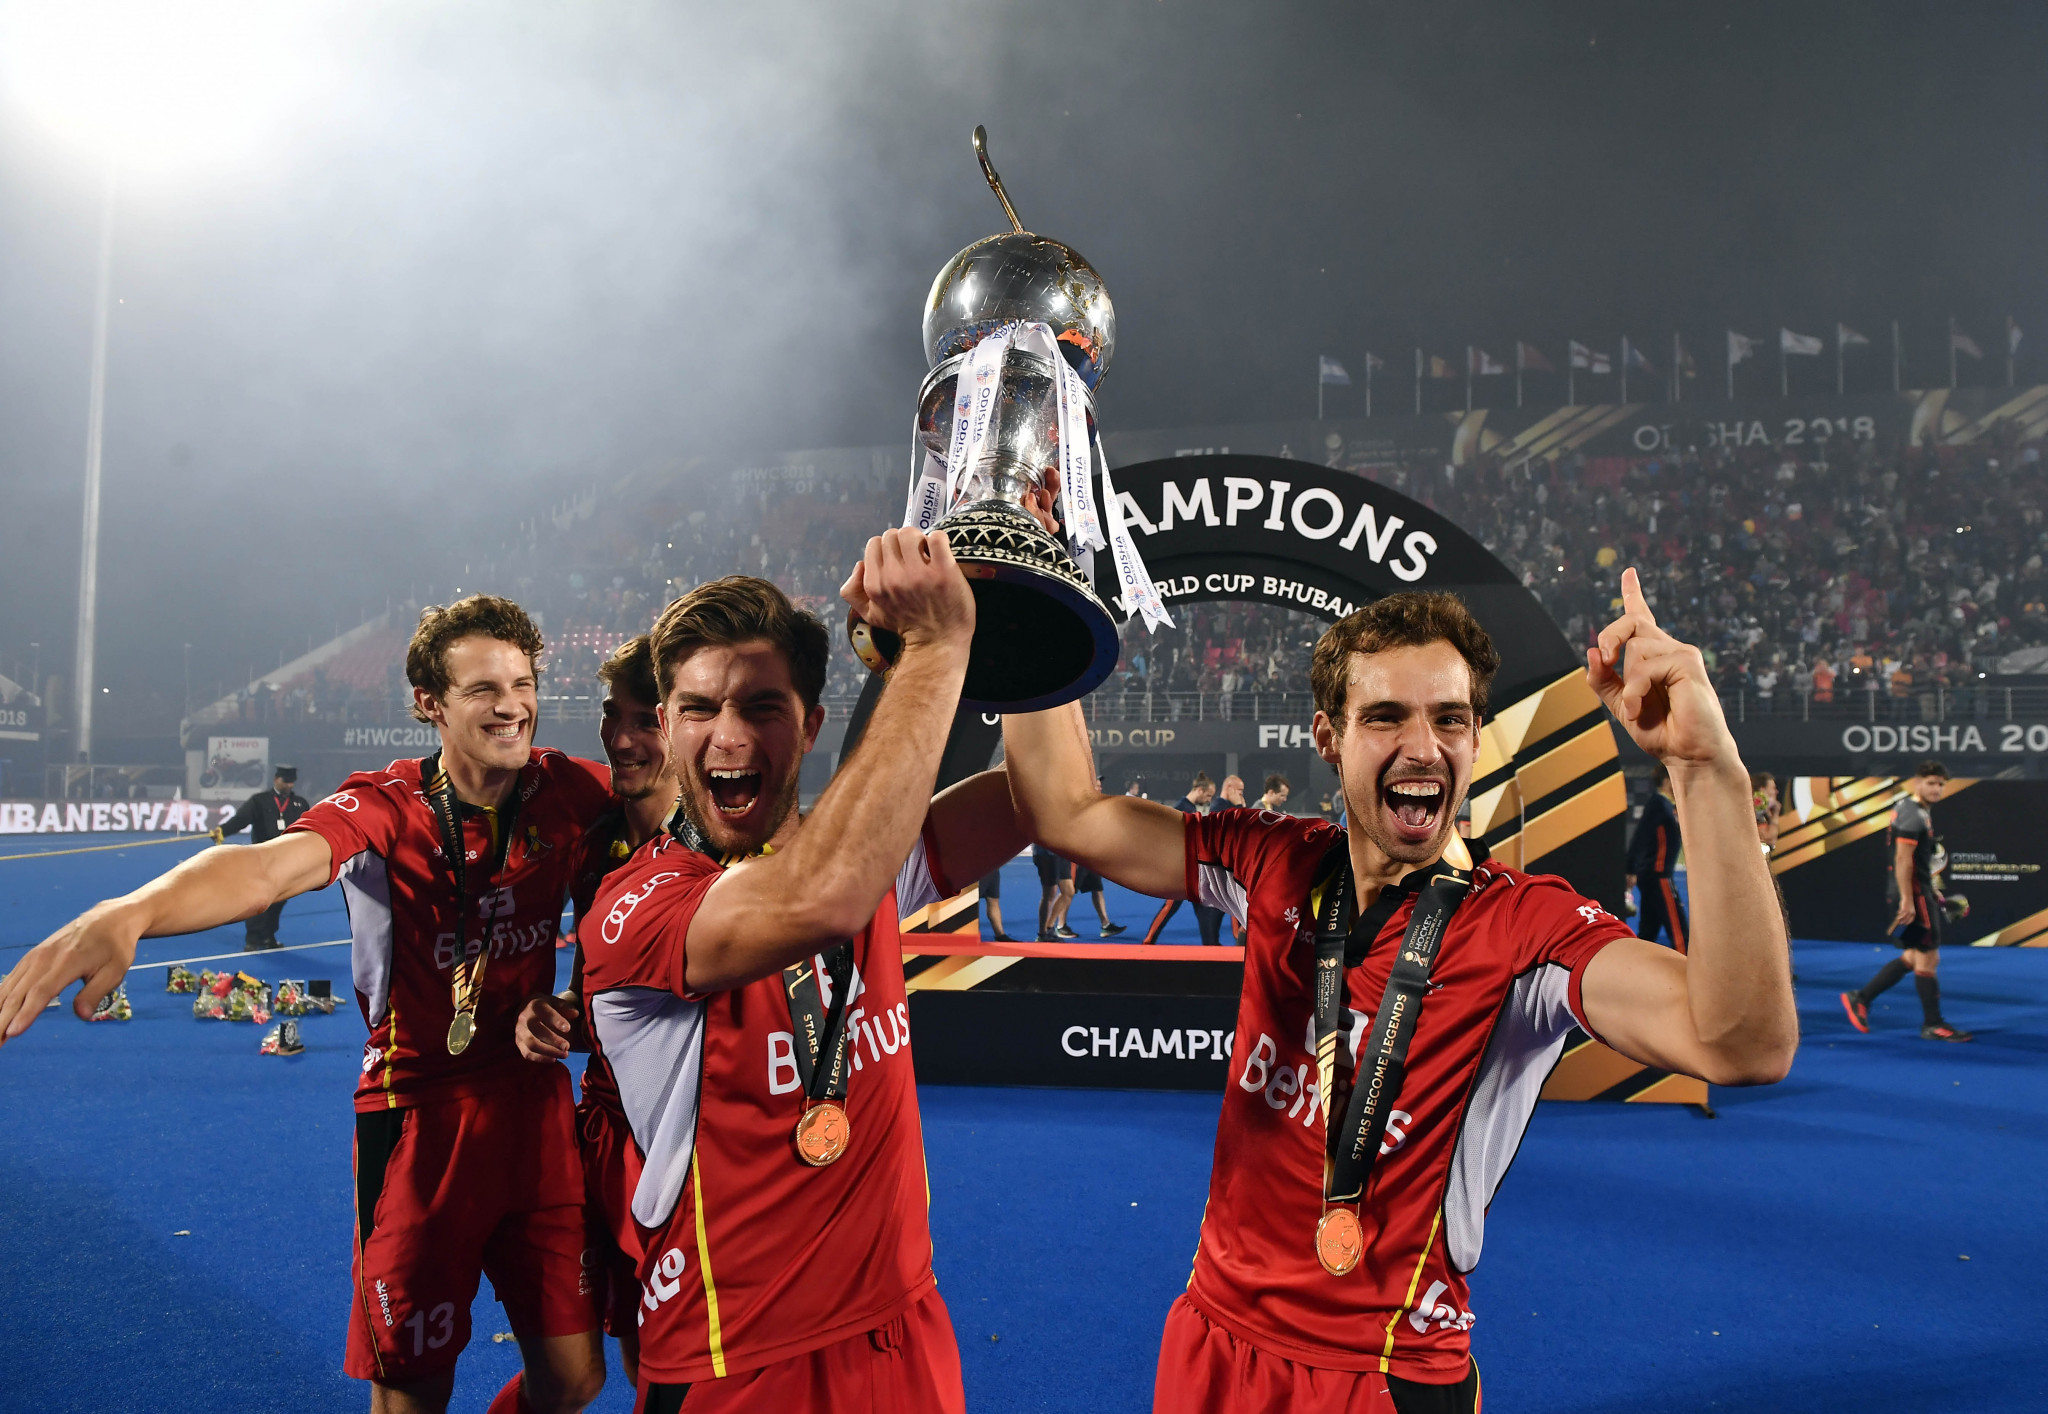 Battle-lines drawn as candidates for both Hockey World Cups emerge